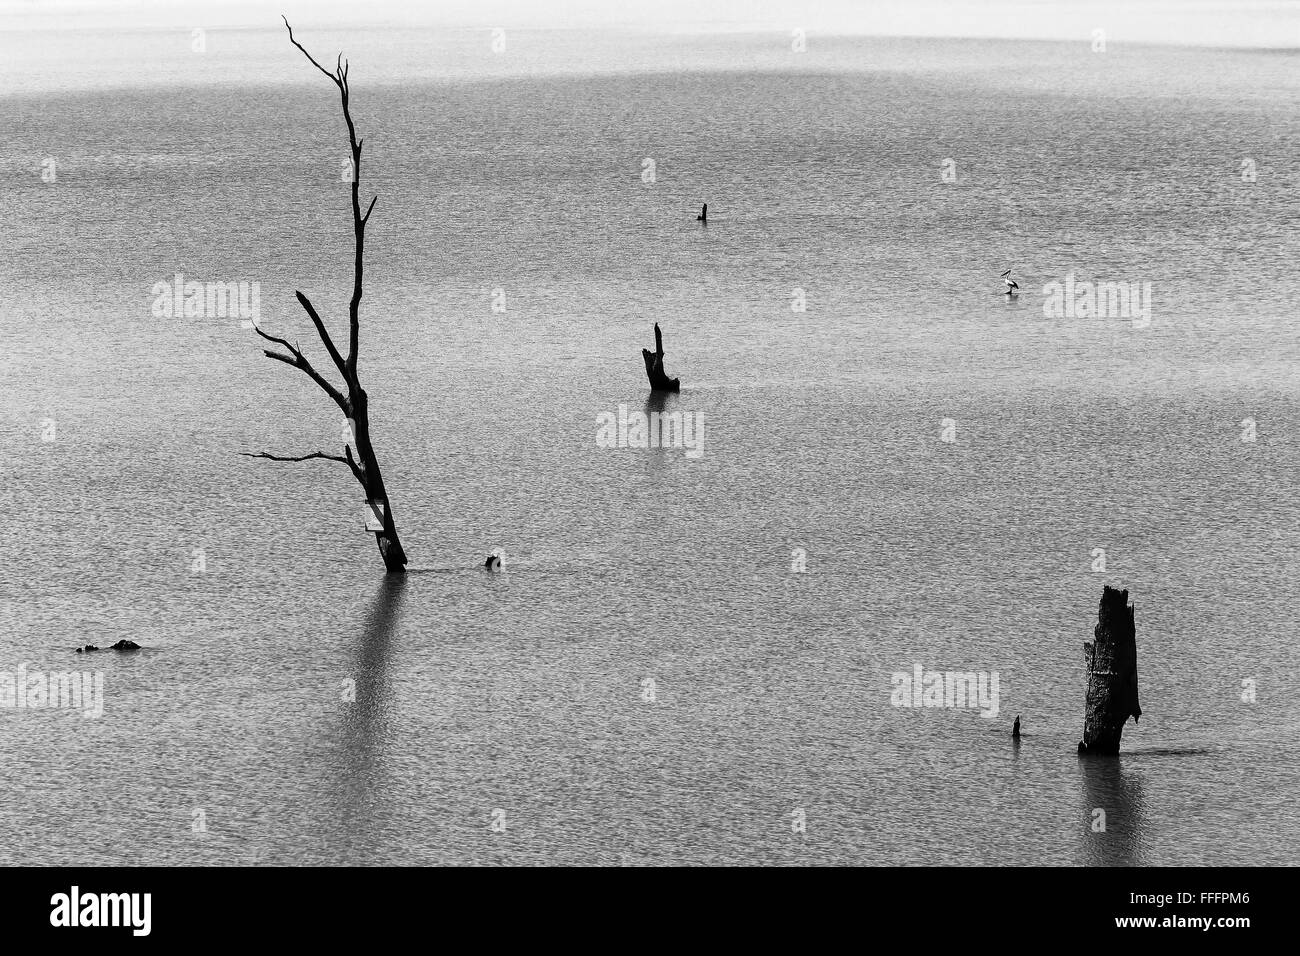 daed trees and pelican bird standing out of mighty Murray river in South AUstralia. Black white version only, no - Stock Image